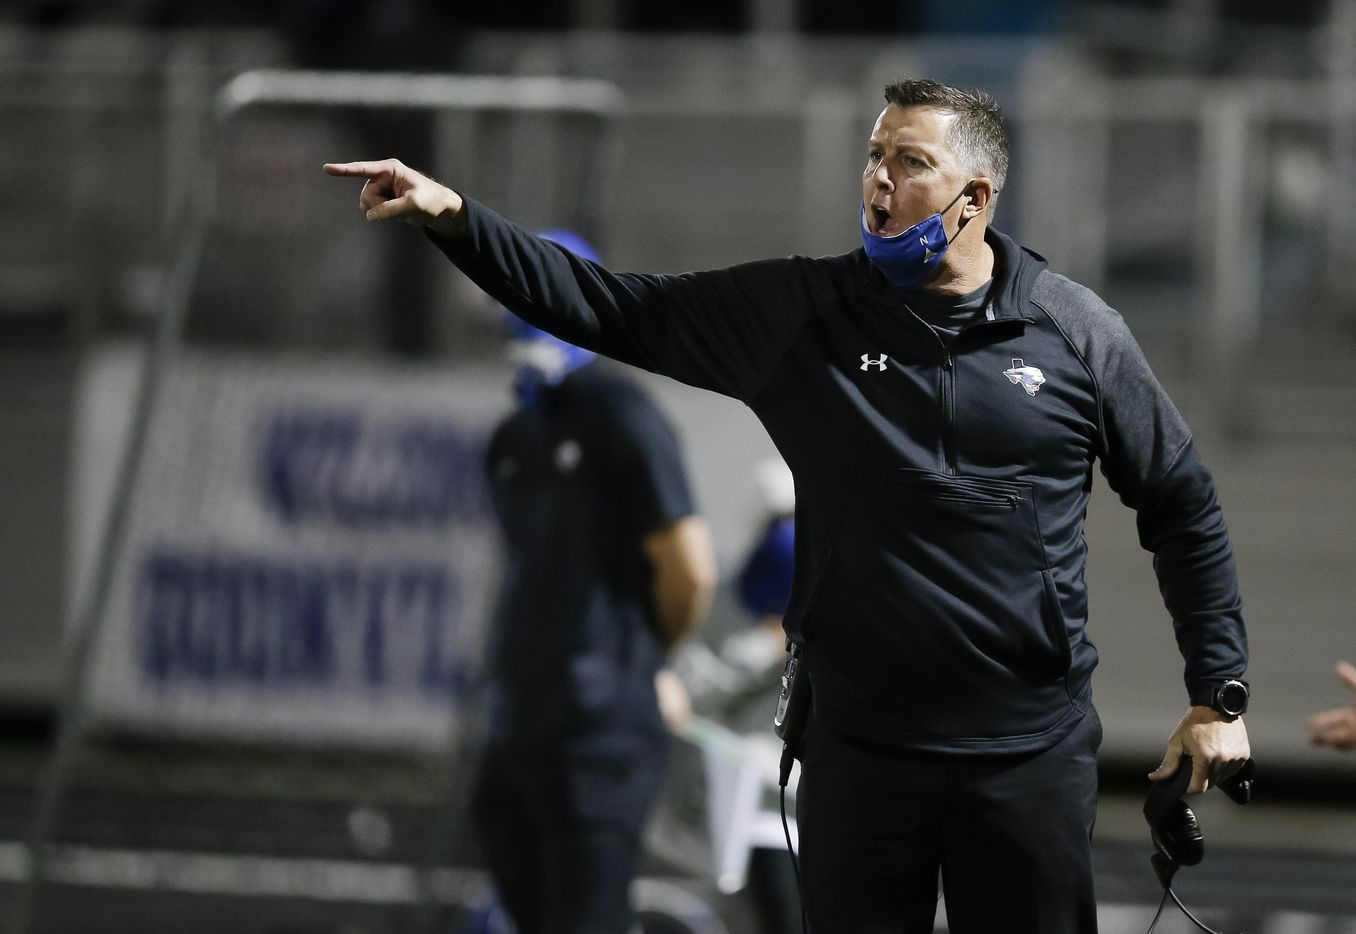 North Forney head coach Randy Jackson shouts instructions to his players during the second half of a high school playoff football game against Ennis in Forney, Thursday, November 19, 2020. Ennis won 38-14. (Brandon Wade/Special Contributor)